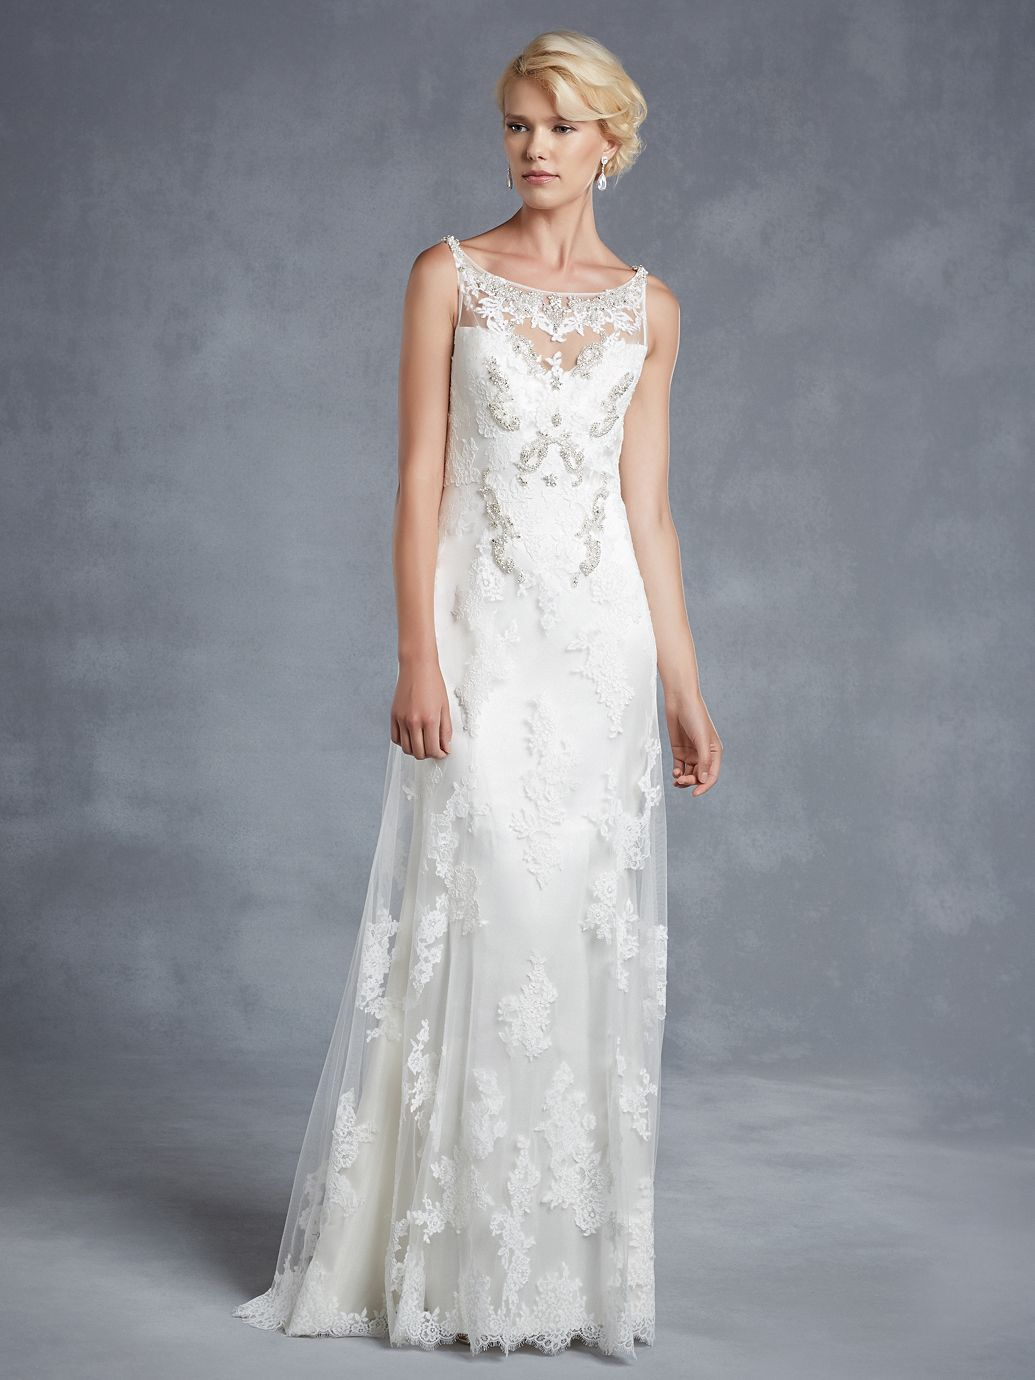 Hope front view bridal gowns pinterest gowns bridal gowns and